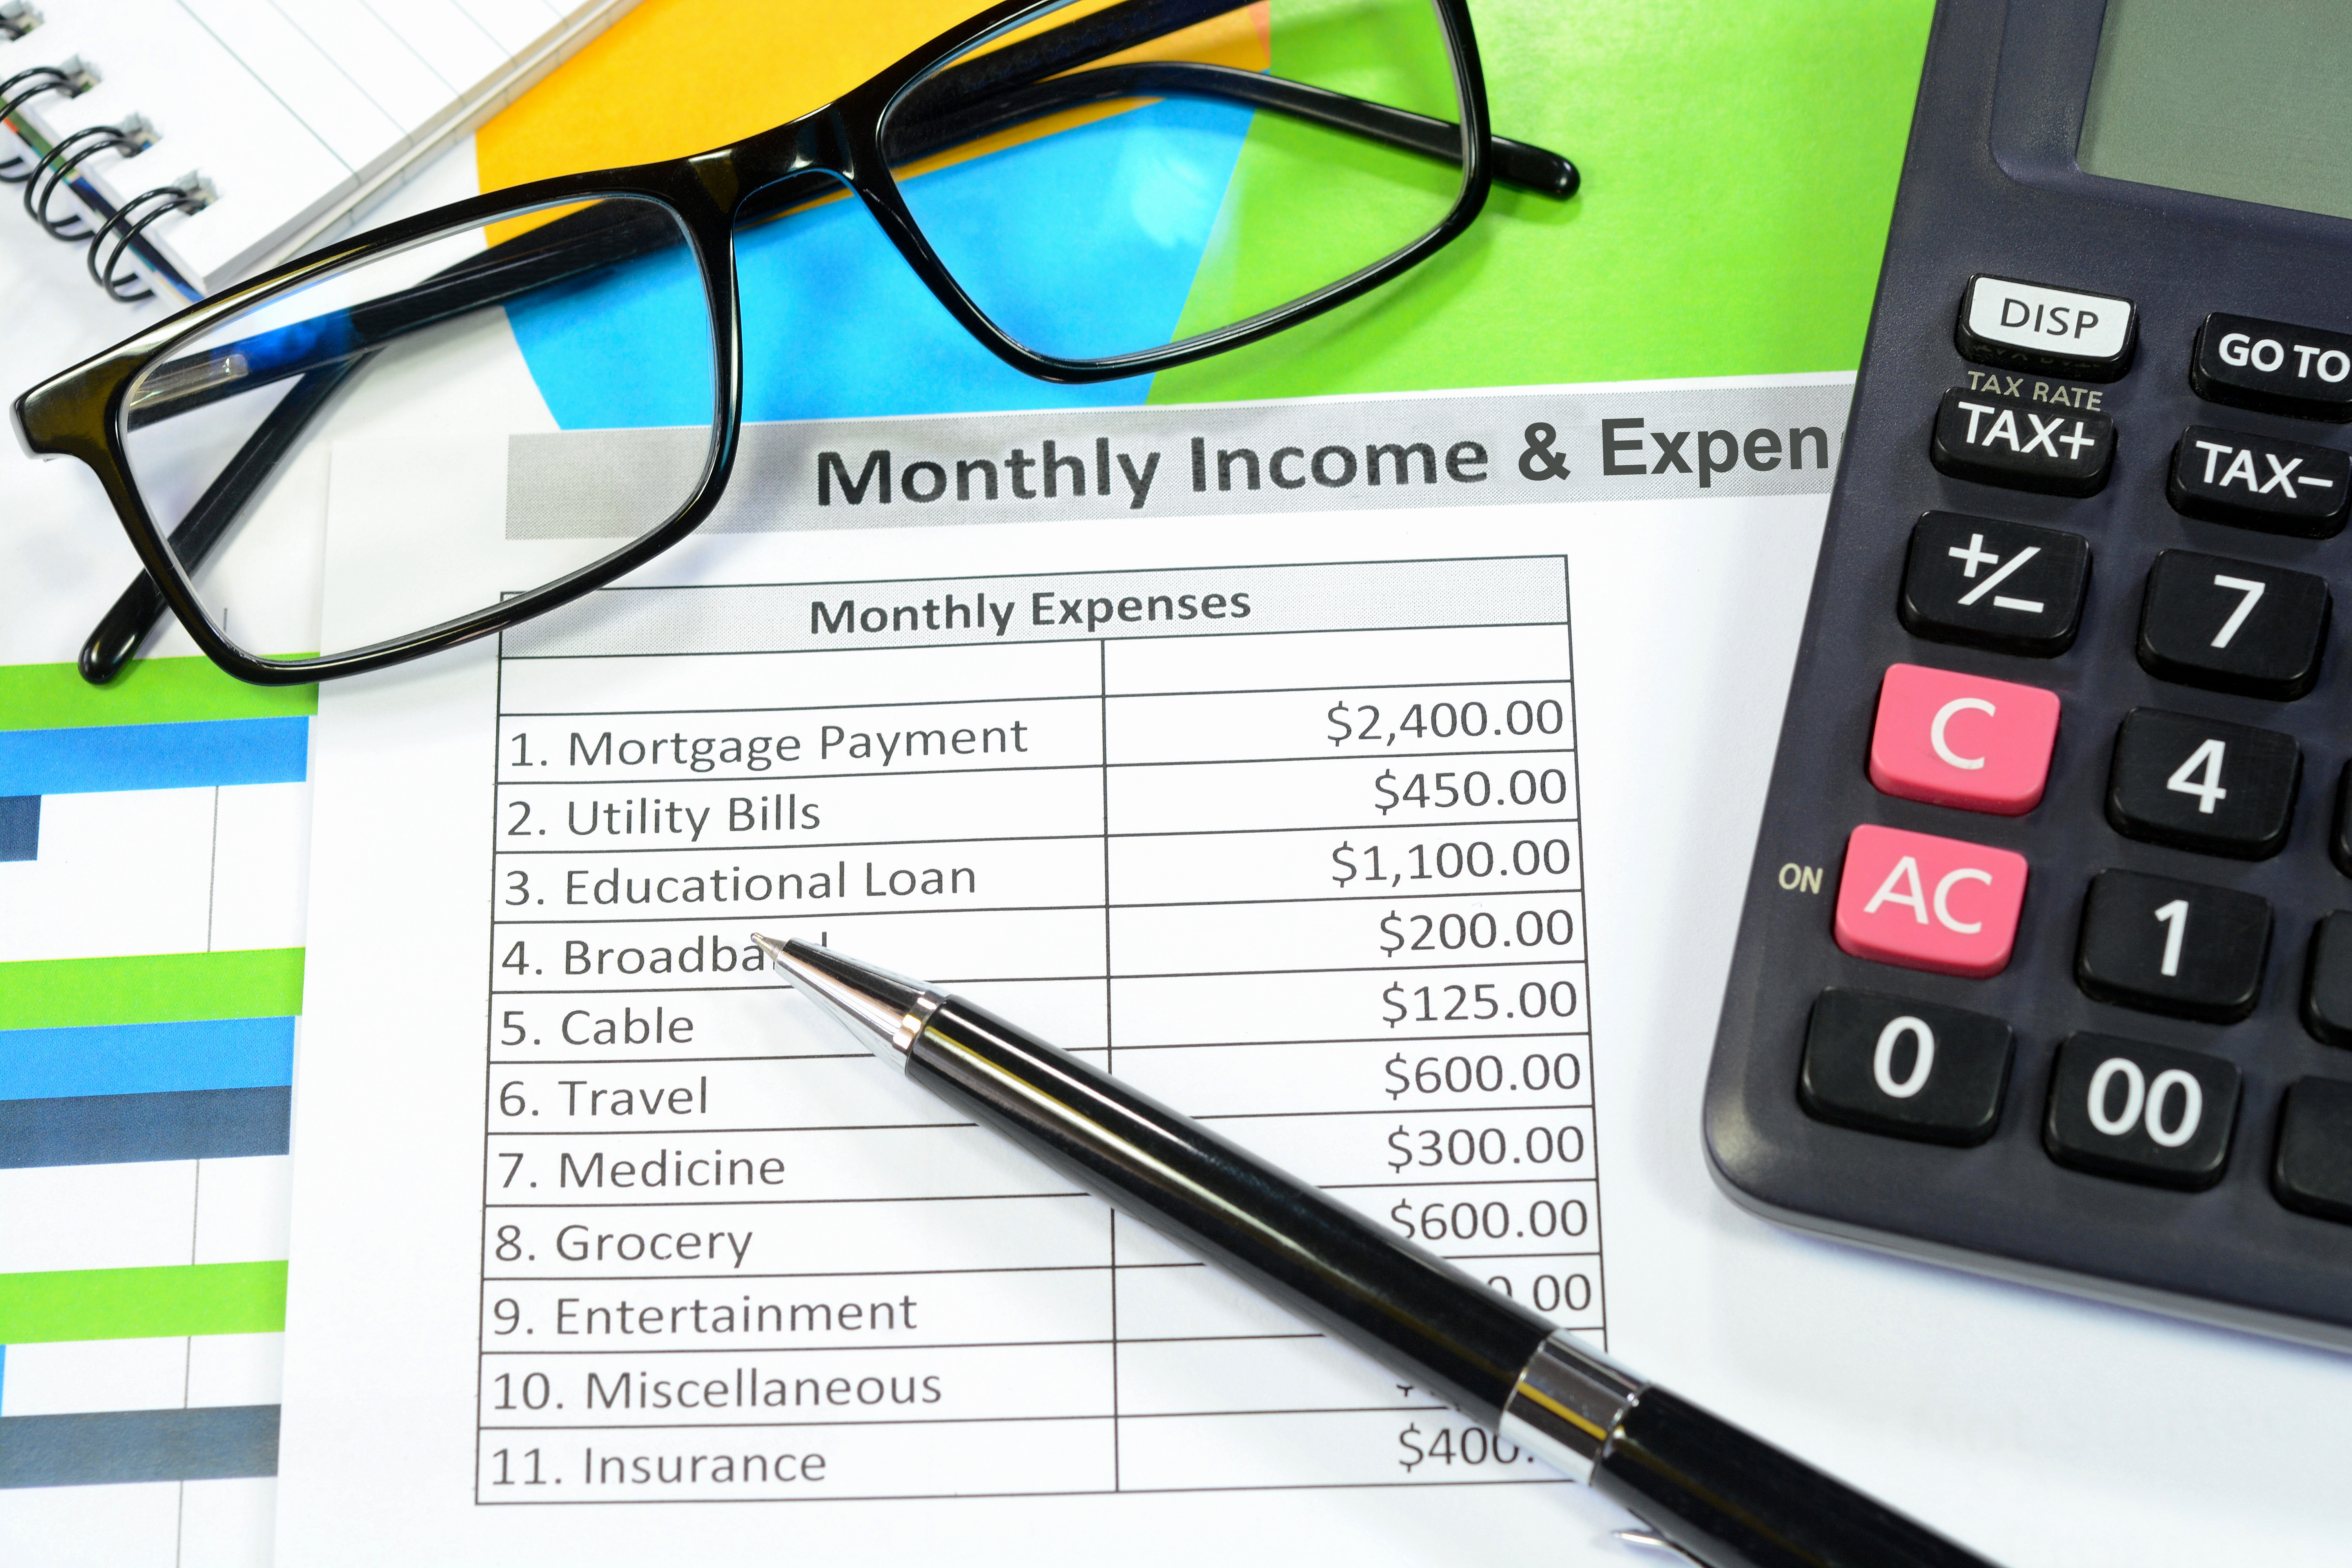 calculator, pen, glasses on monthly income and expense sheet